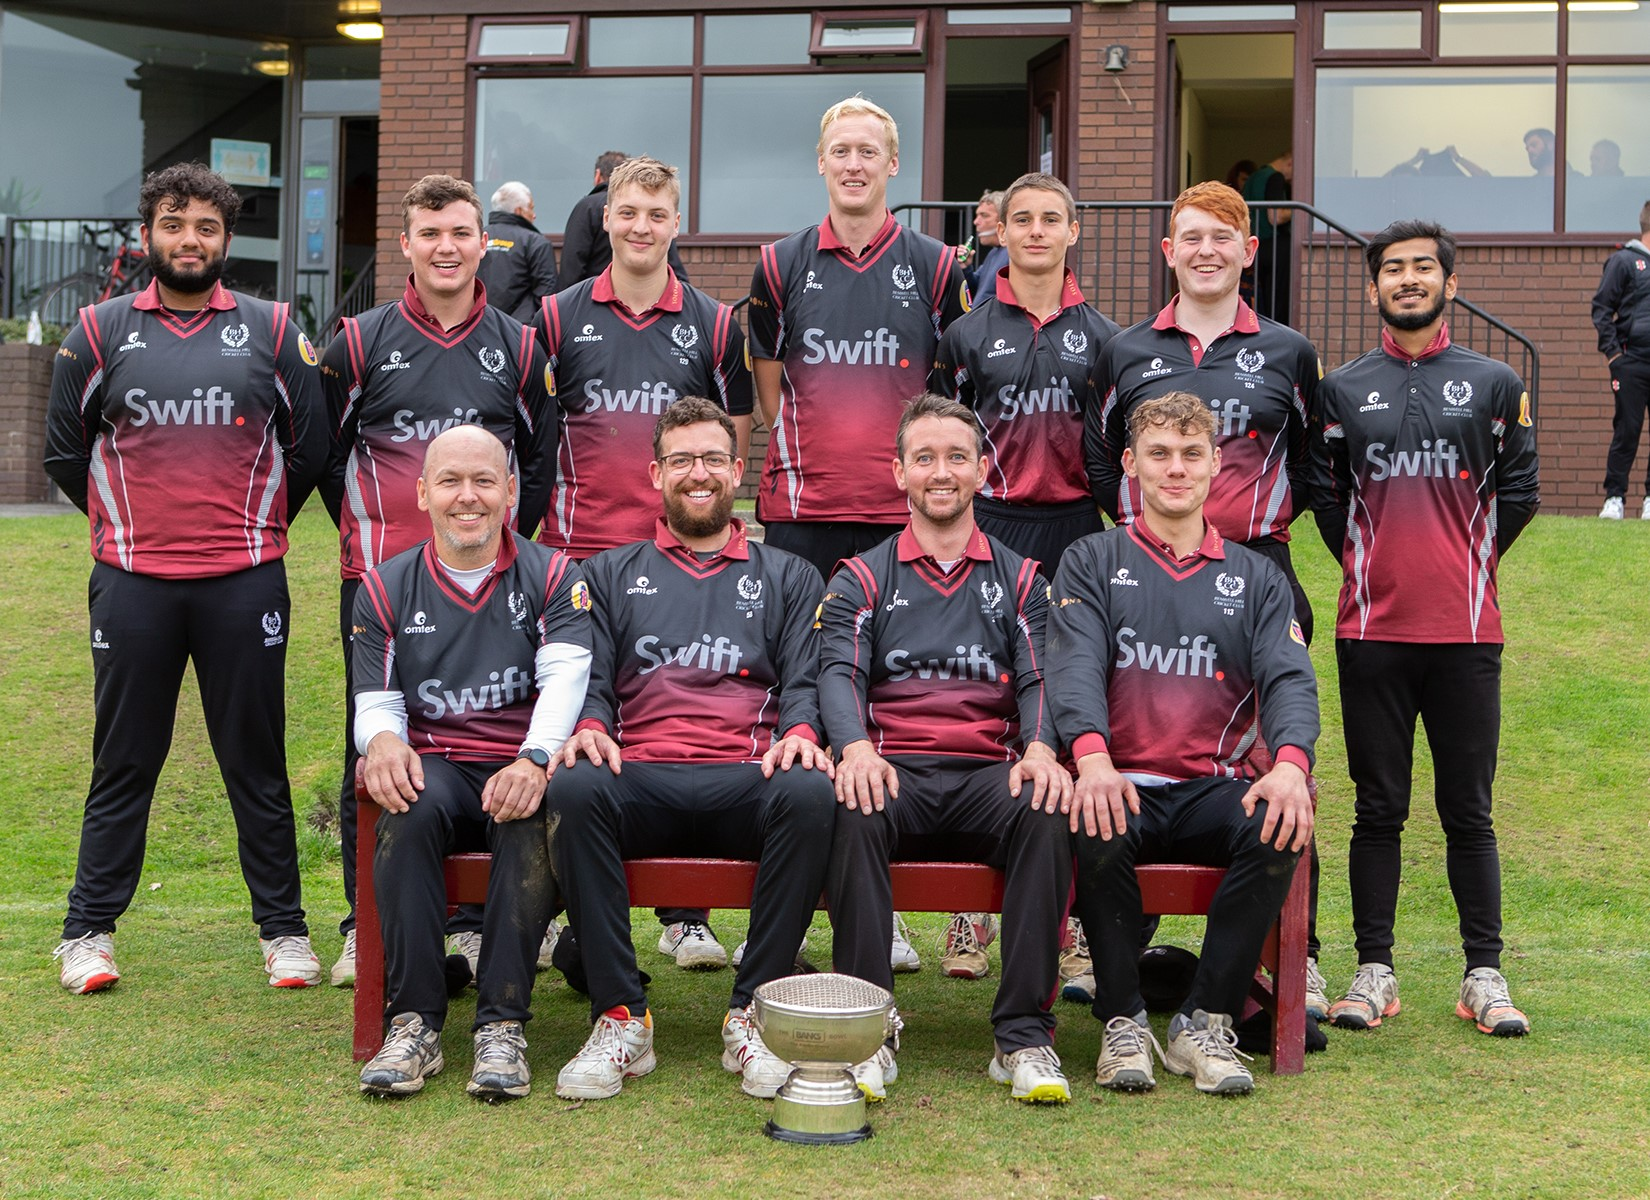 The 2nd XI win the Banks Cup against Hetton Lyons